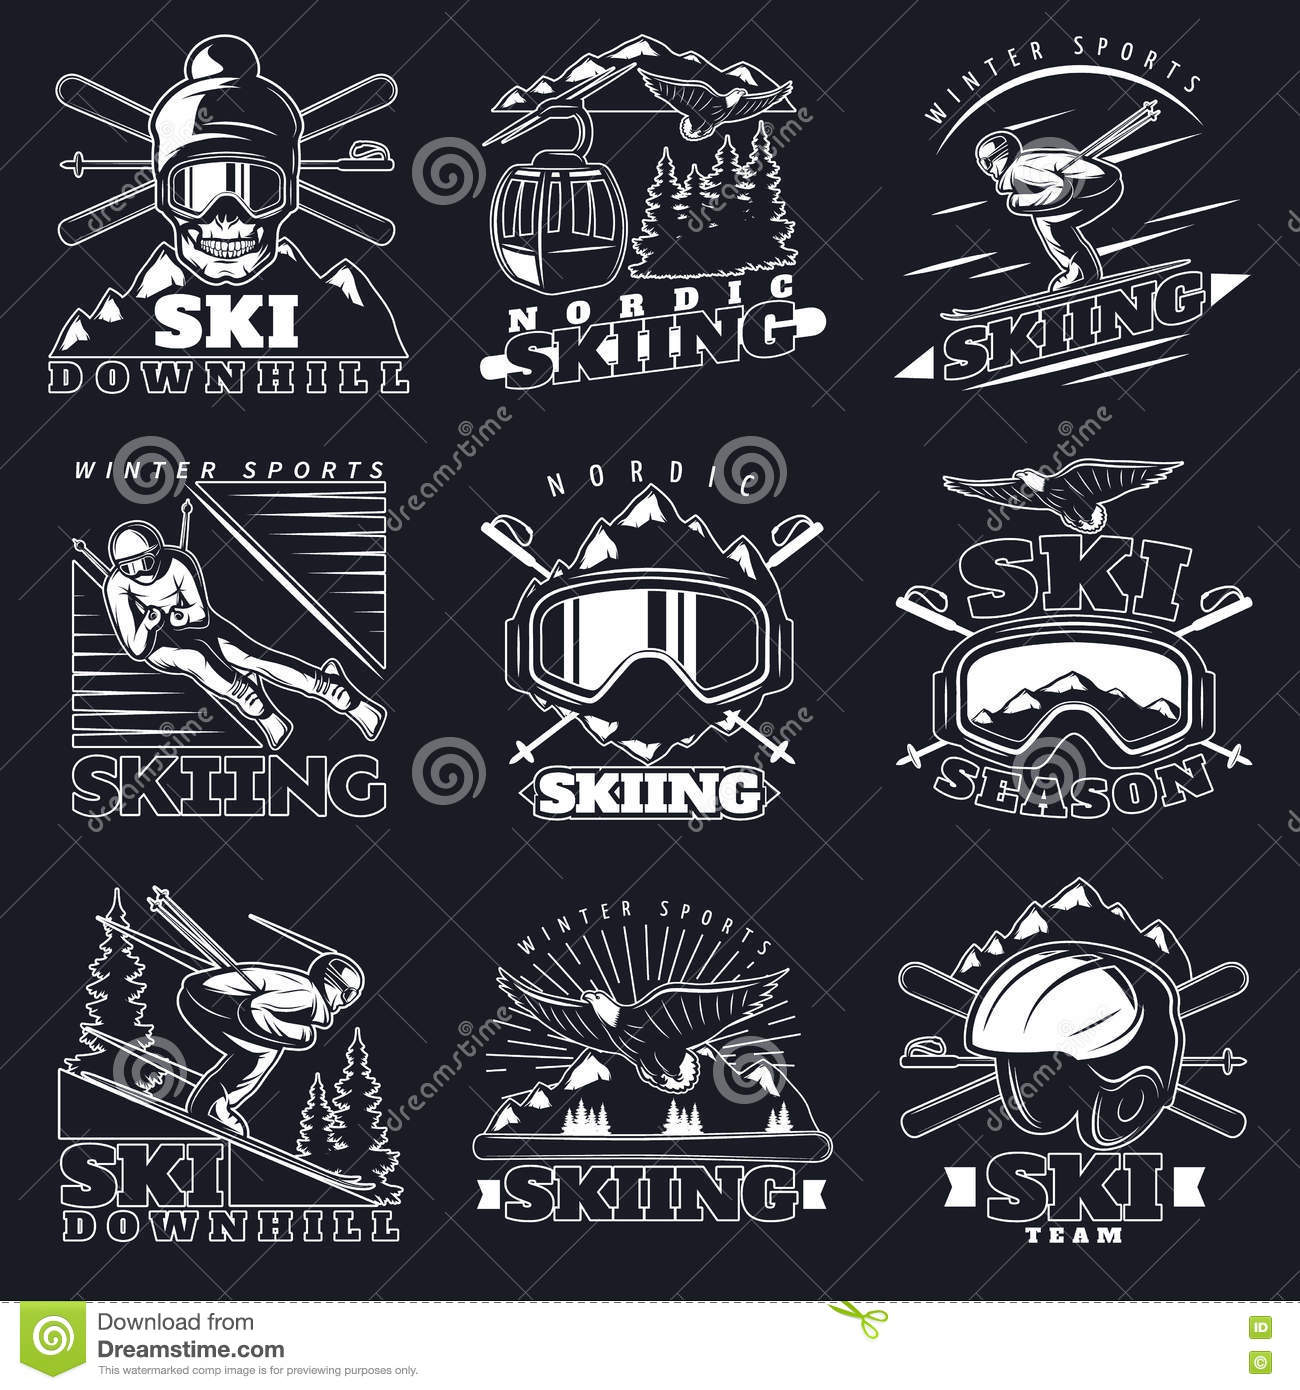 Ski Downhill Emblems Set